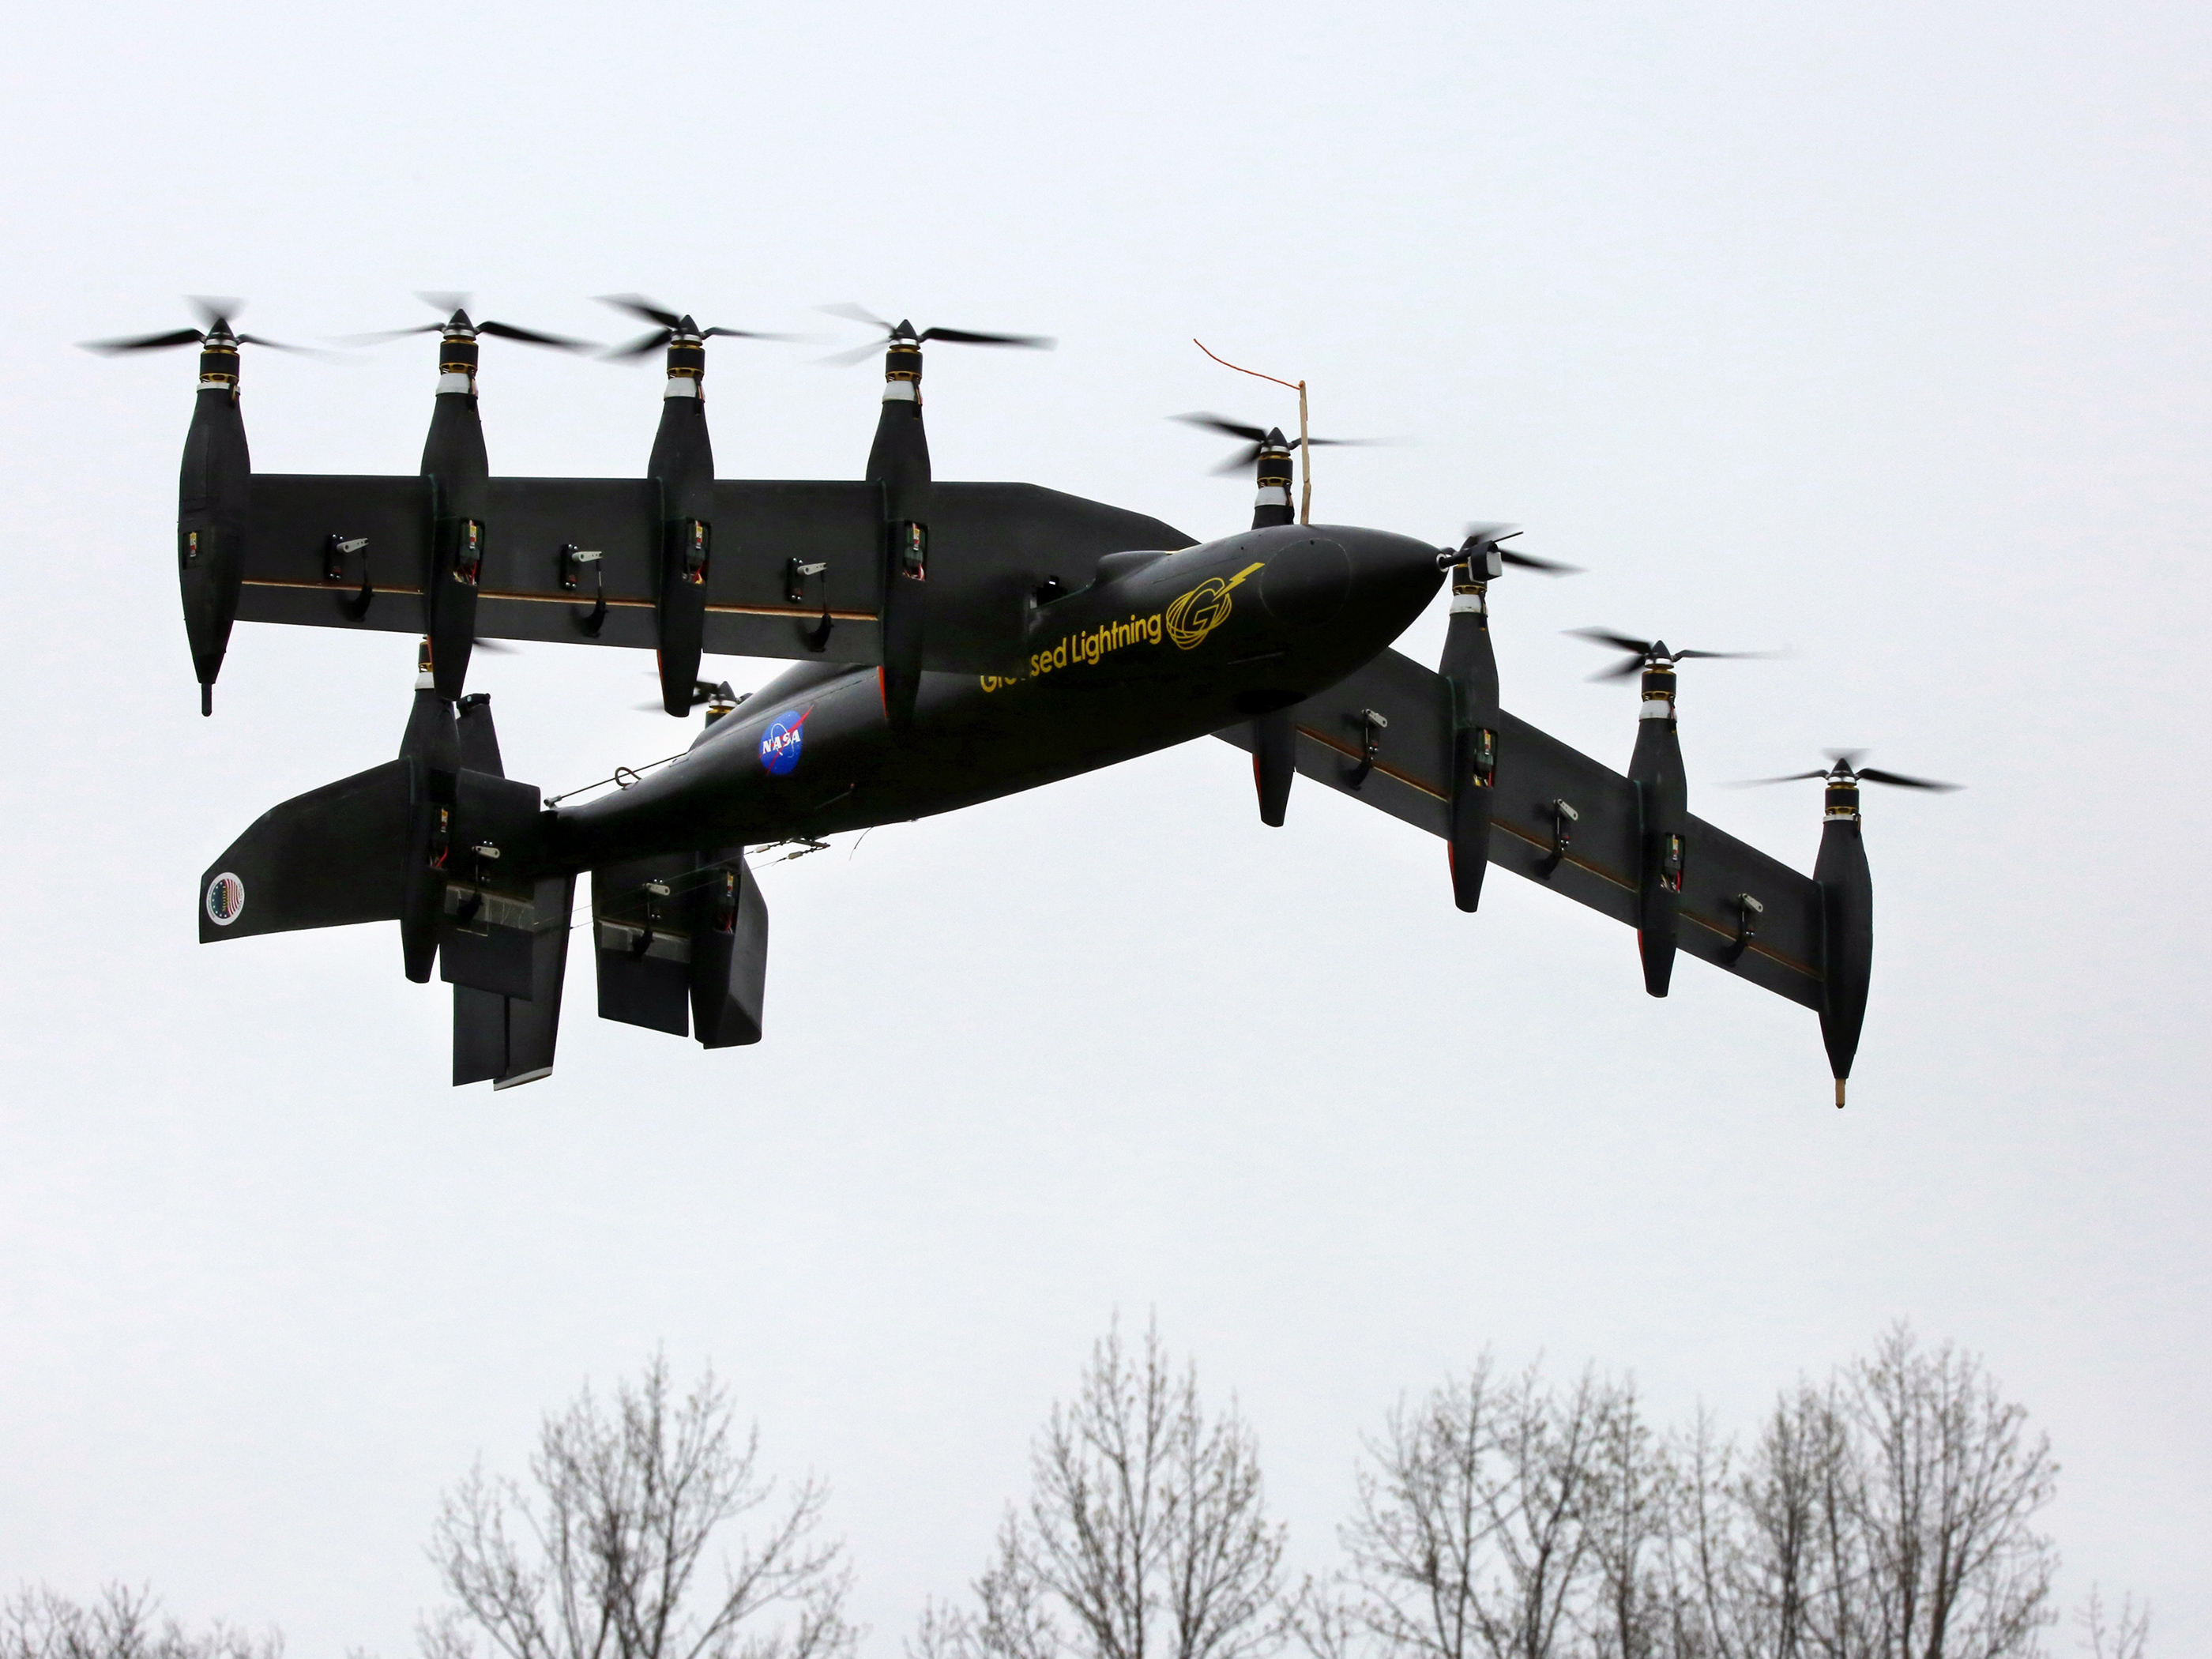 four rotor drone with Ten Engine Electric Plane Prototype Takes Off on Belgium Receives Last Nh90 Troop Transport Helicopter together with Dji Spark Drone Review besides Bell UH 1 Iroquois in addition V22 osprey aerocopter storage configuration moreover RAF Hercules Came 200ft Smashing Drone.